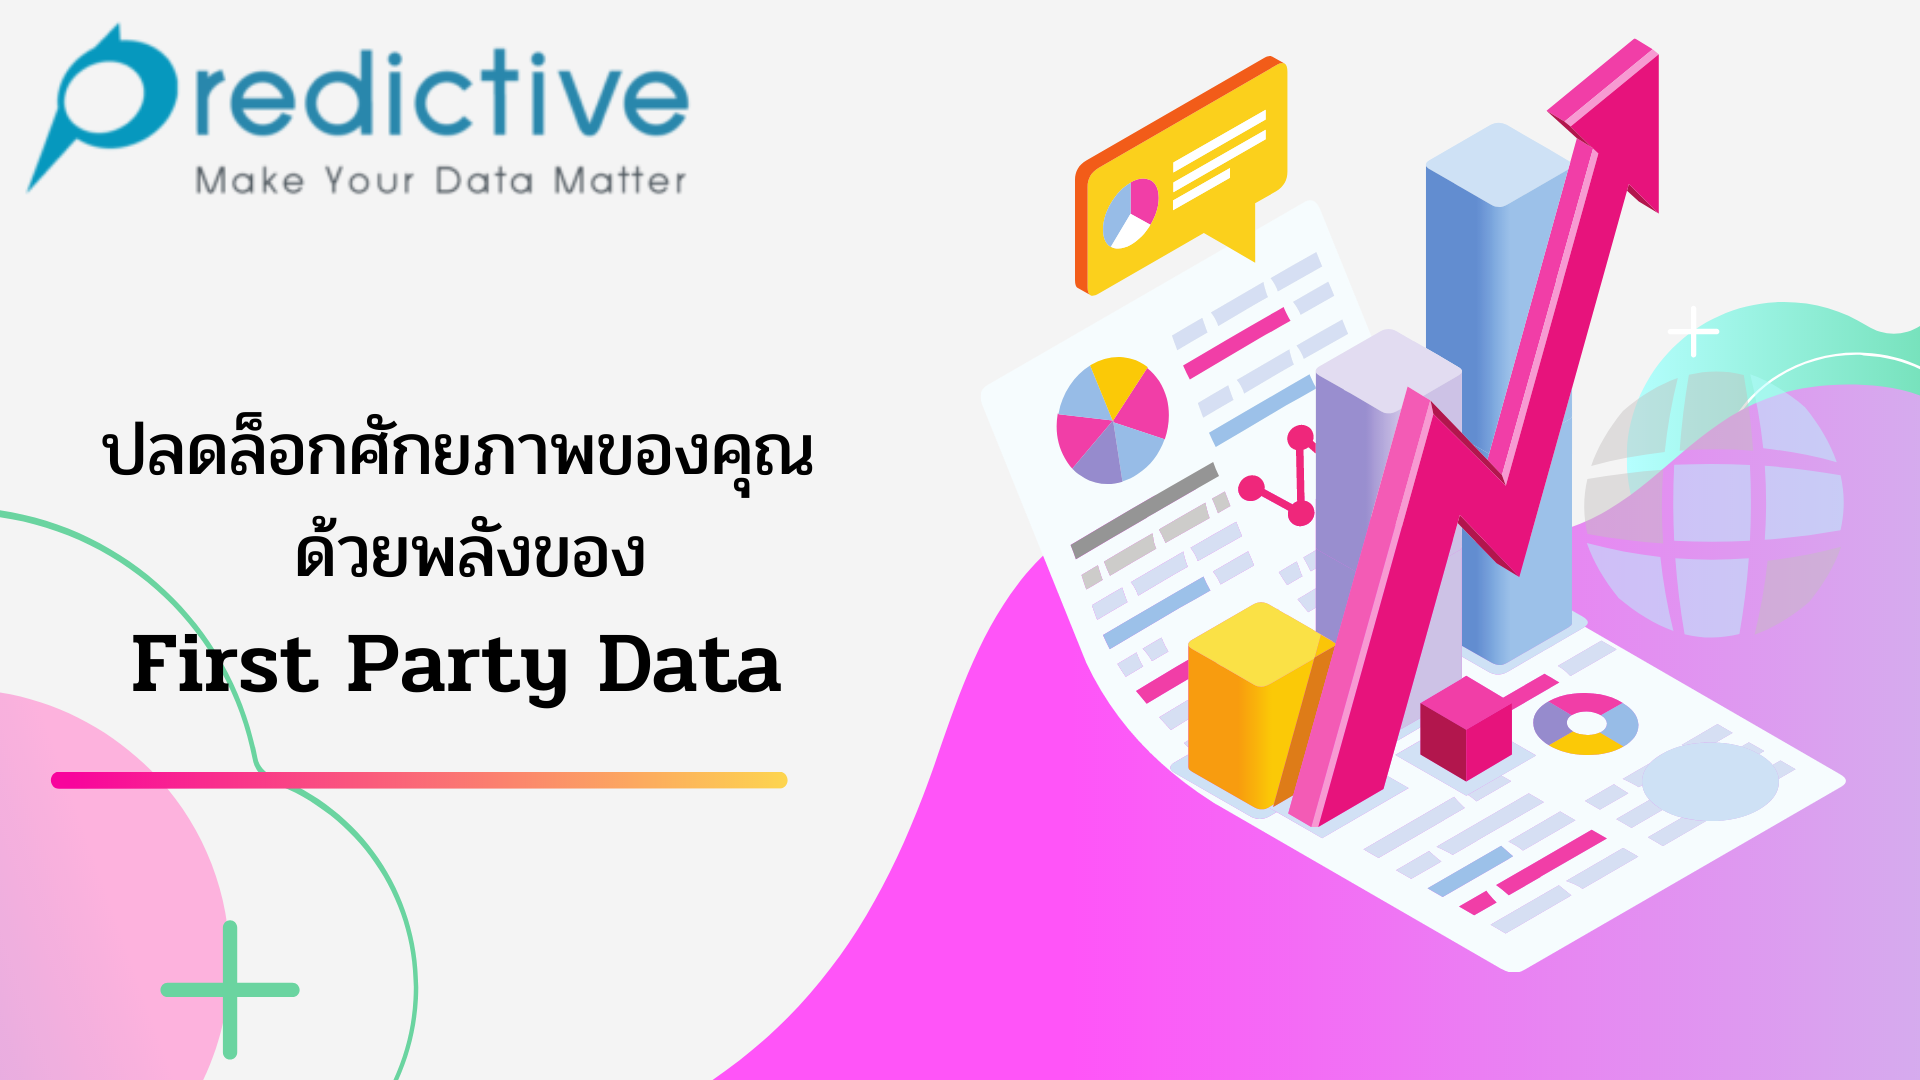 First Party Data